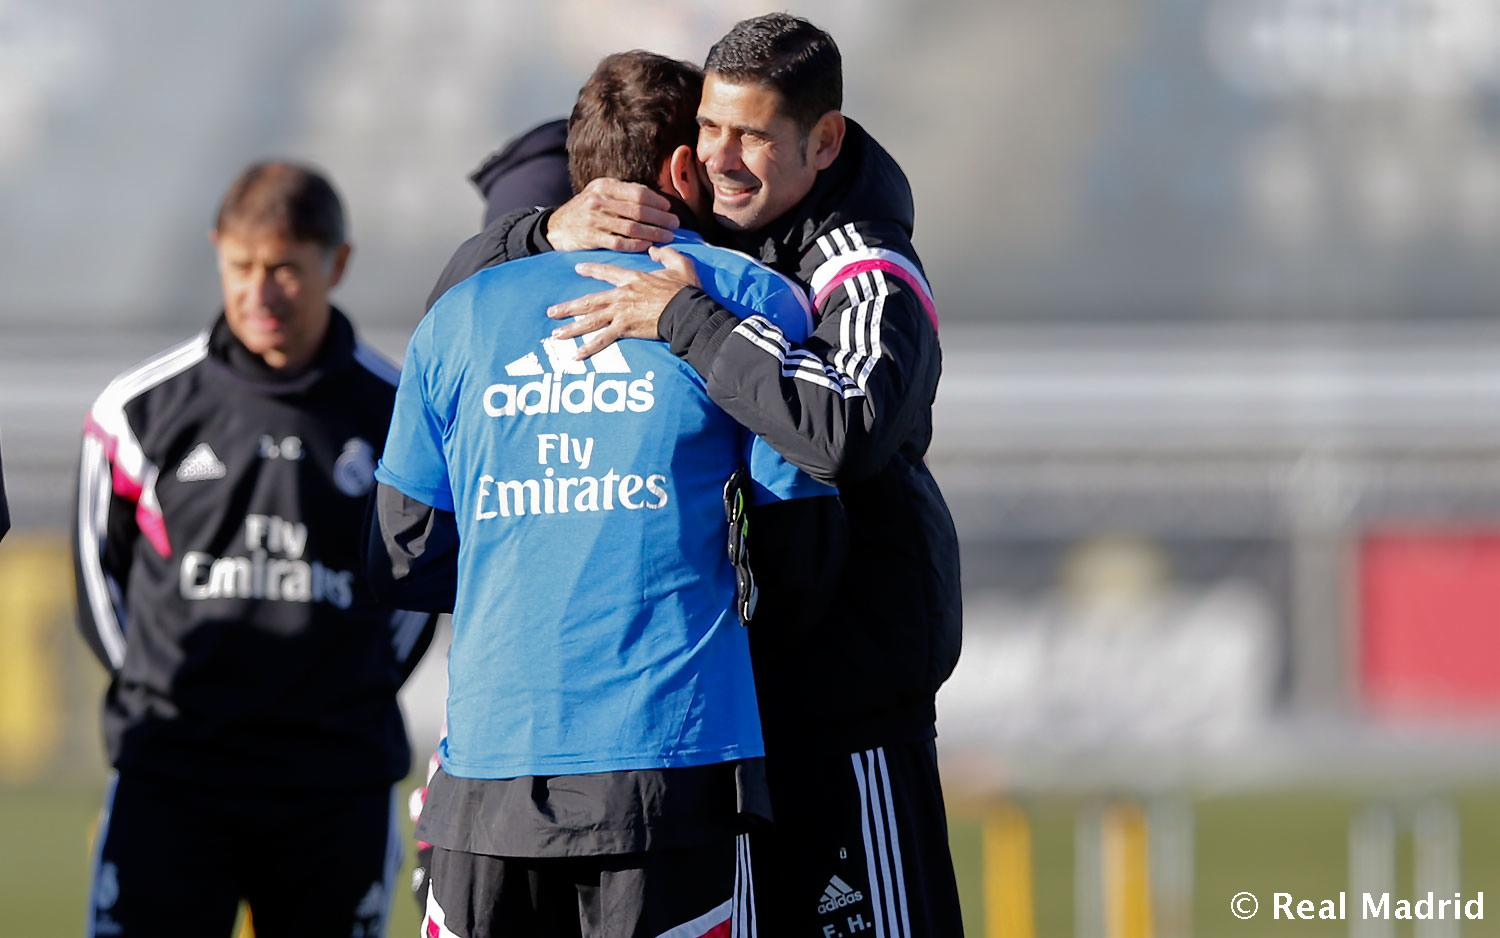 Real Madrid - Entrenamiento del Real Madrid - 02-01-2015